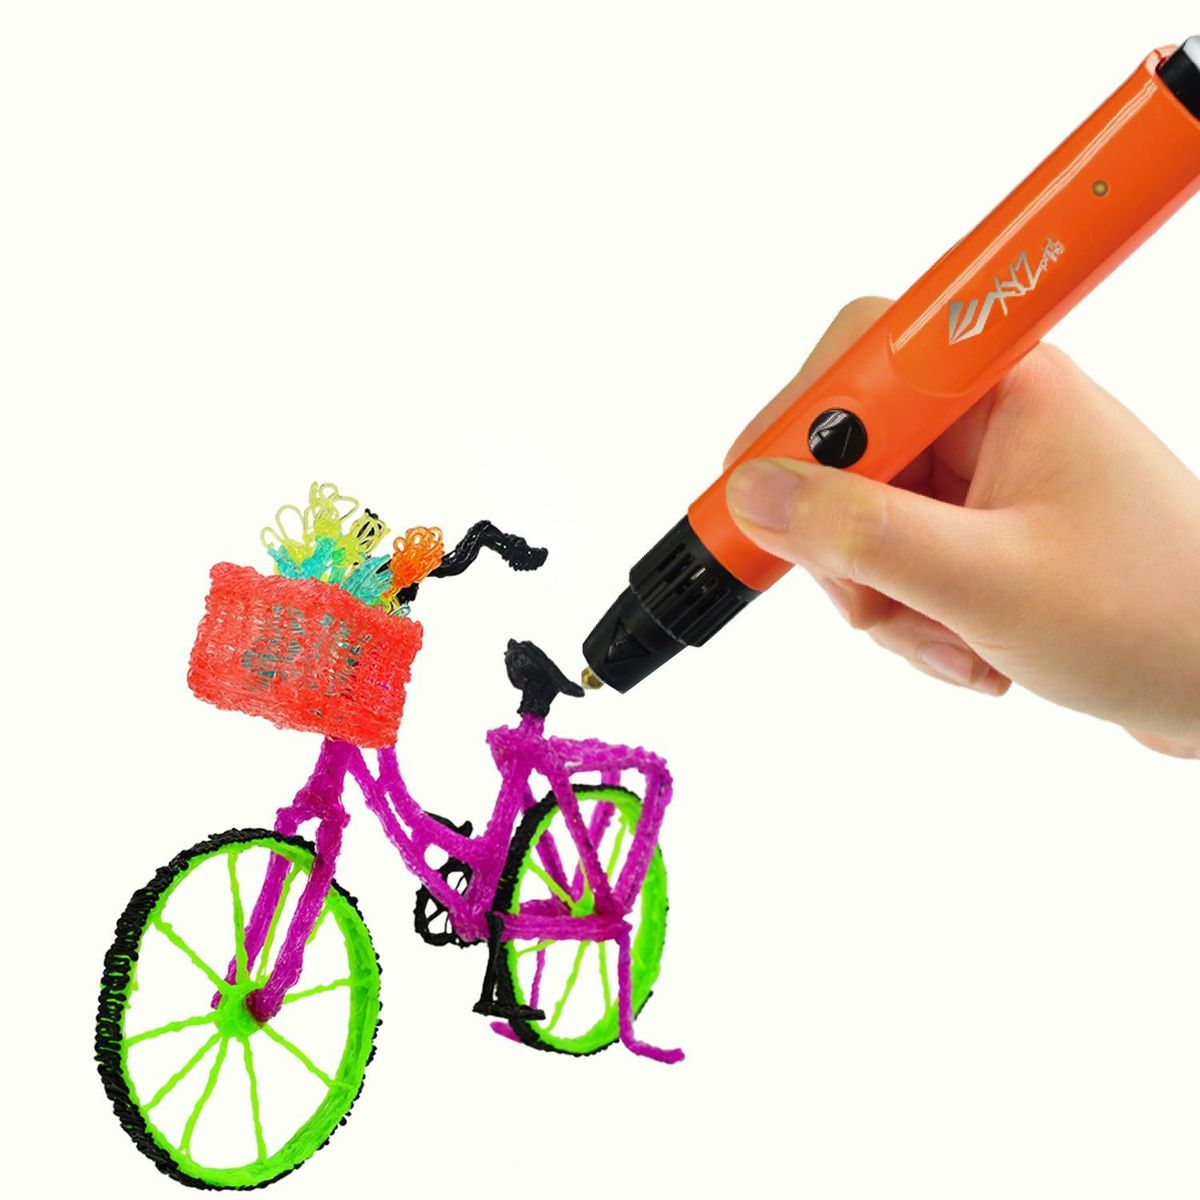 da Vinci 3D Pen Supplier